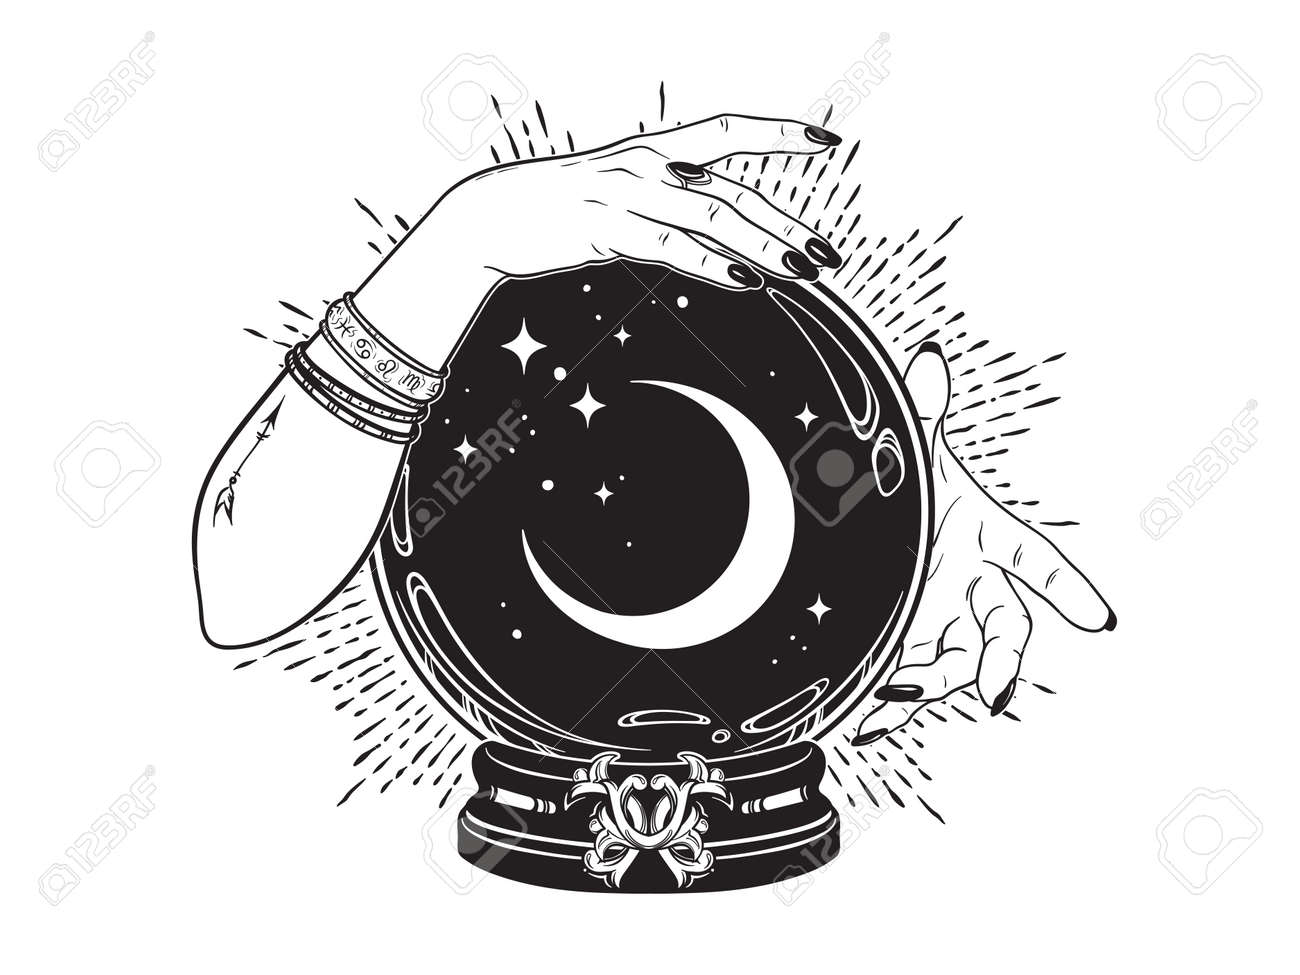 Magic crystal ball with crescent moon and stars in hands of fortune teller line art and dot work. Boho chic tattoo, poster or altar veil print design vector illustration. - 169999761